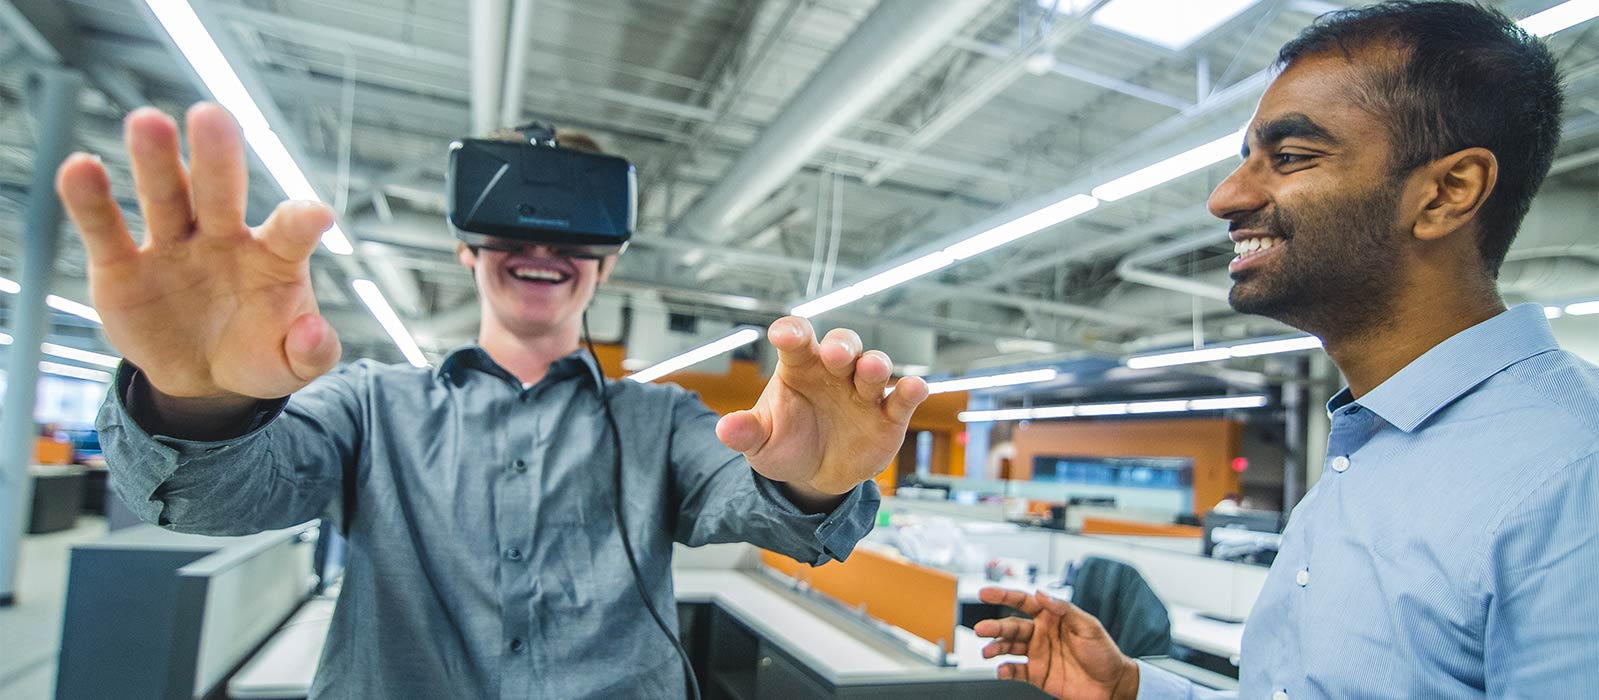 Staff with Virtual Reality